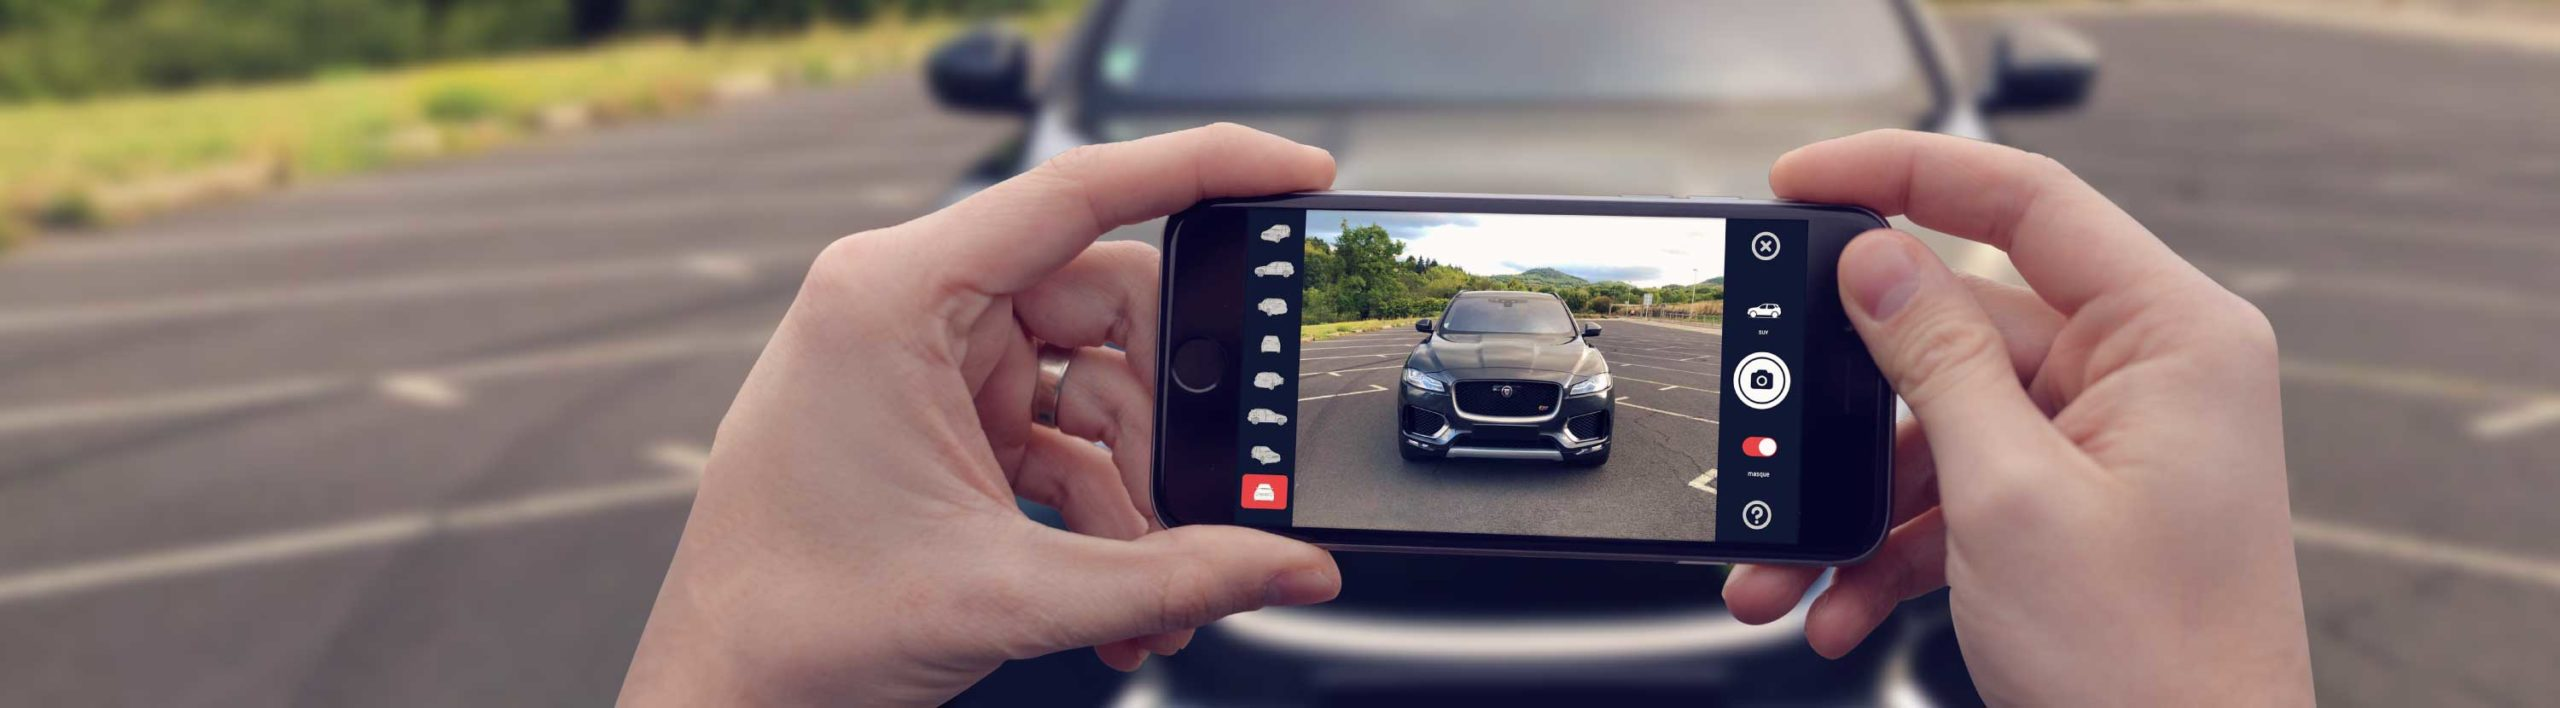 img banner mycarlab carlab logiciel app mobile photo voiture